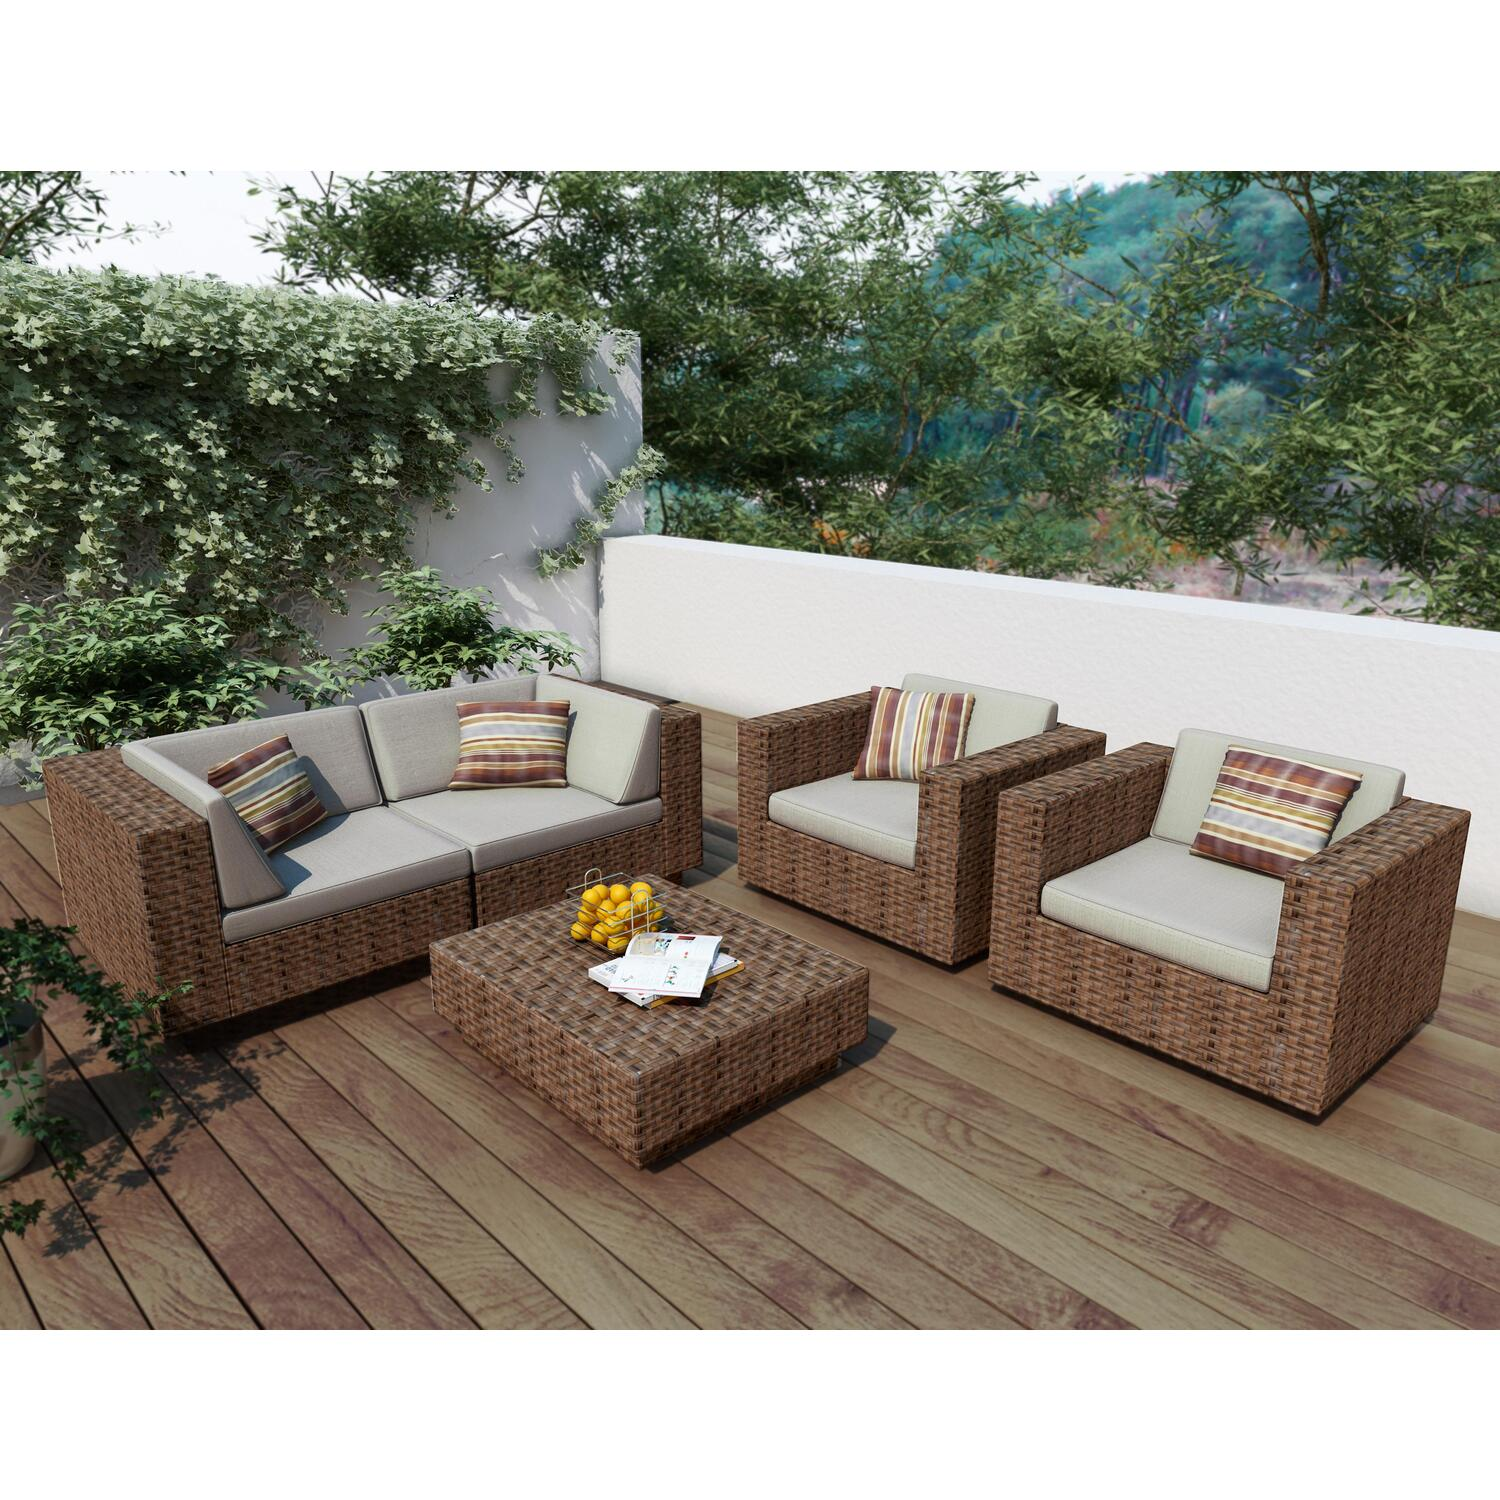 Sonax Park Terrace 5 Piece Sofa Patio Set By Oj Commerce Z